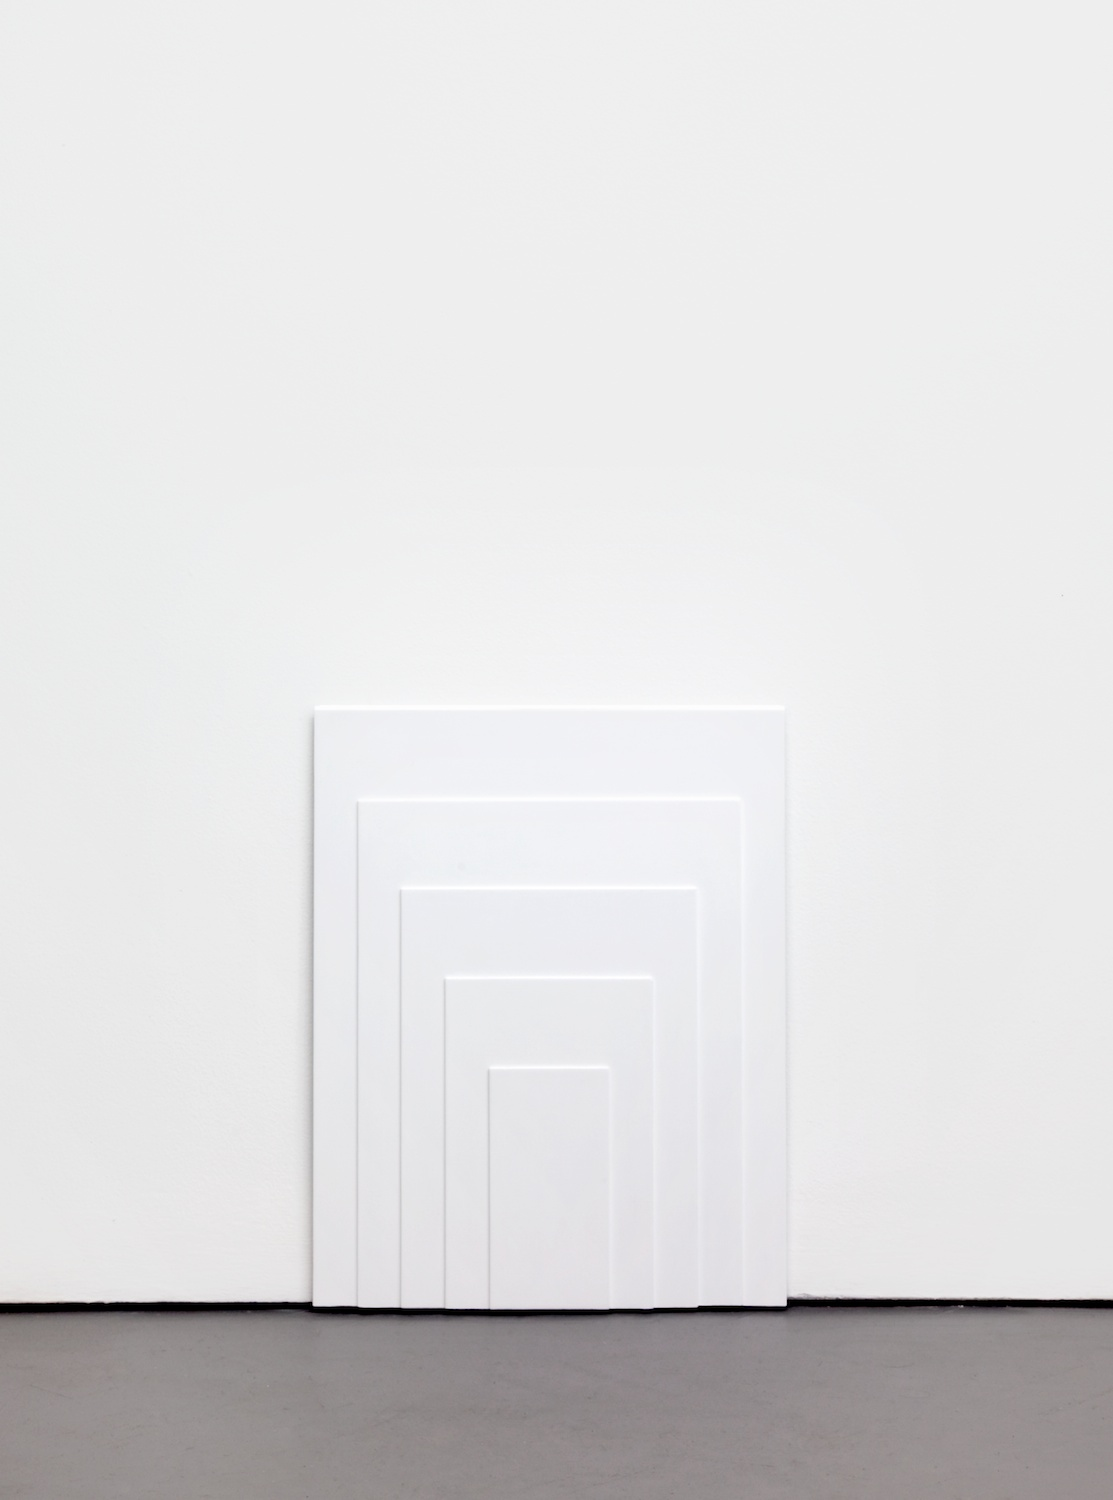 Lisa Williamson  Low Doorways  2011 Acrylic on steel 20 ½h x 16w in LW083